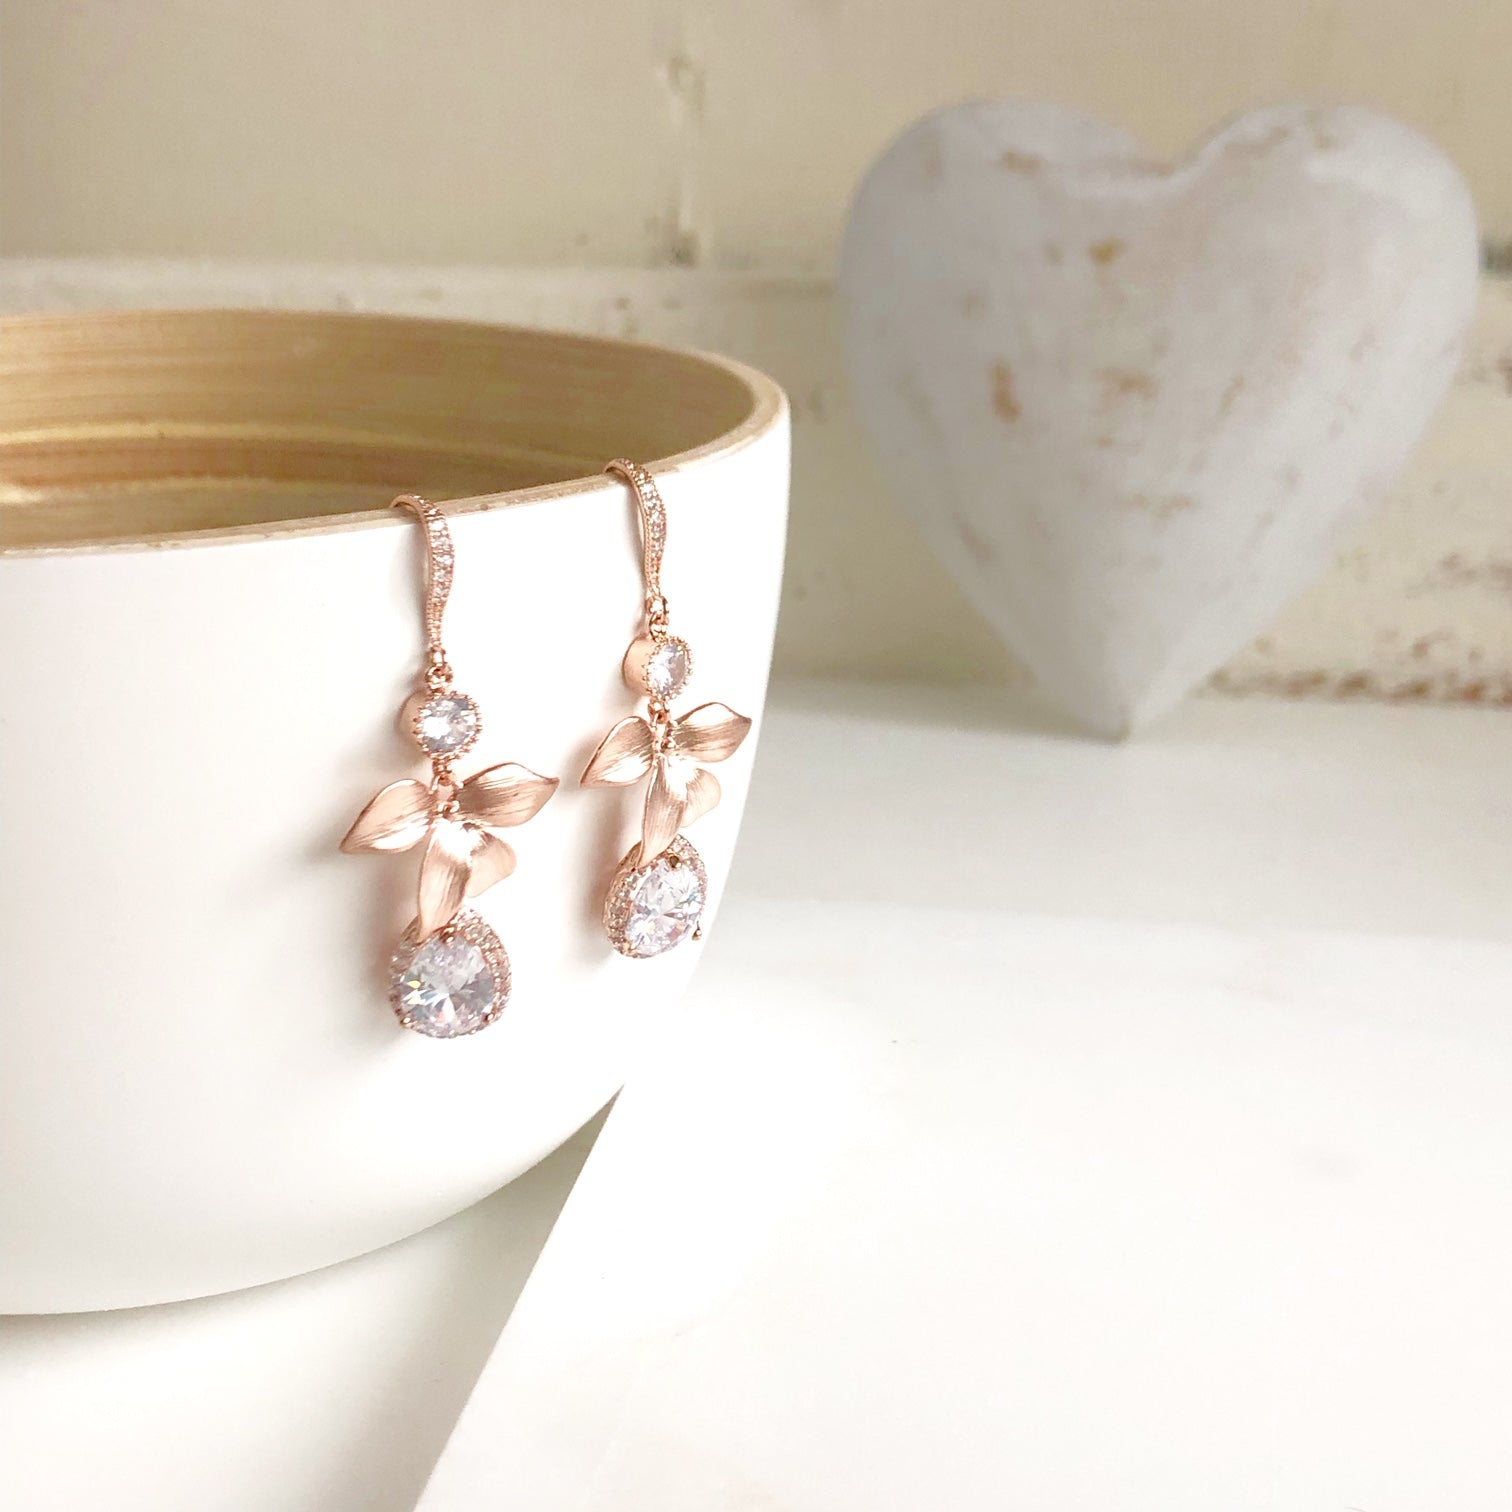 Rose Gold Flower Earrings. Bridal Earrings with Cubic Zirconia Stones.